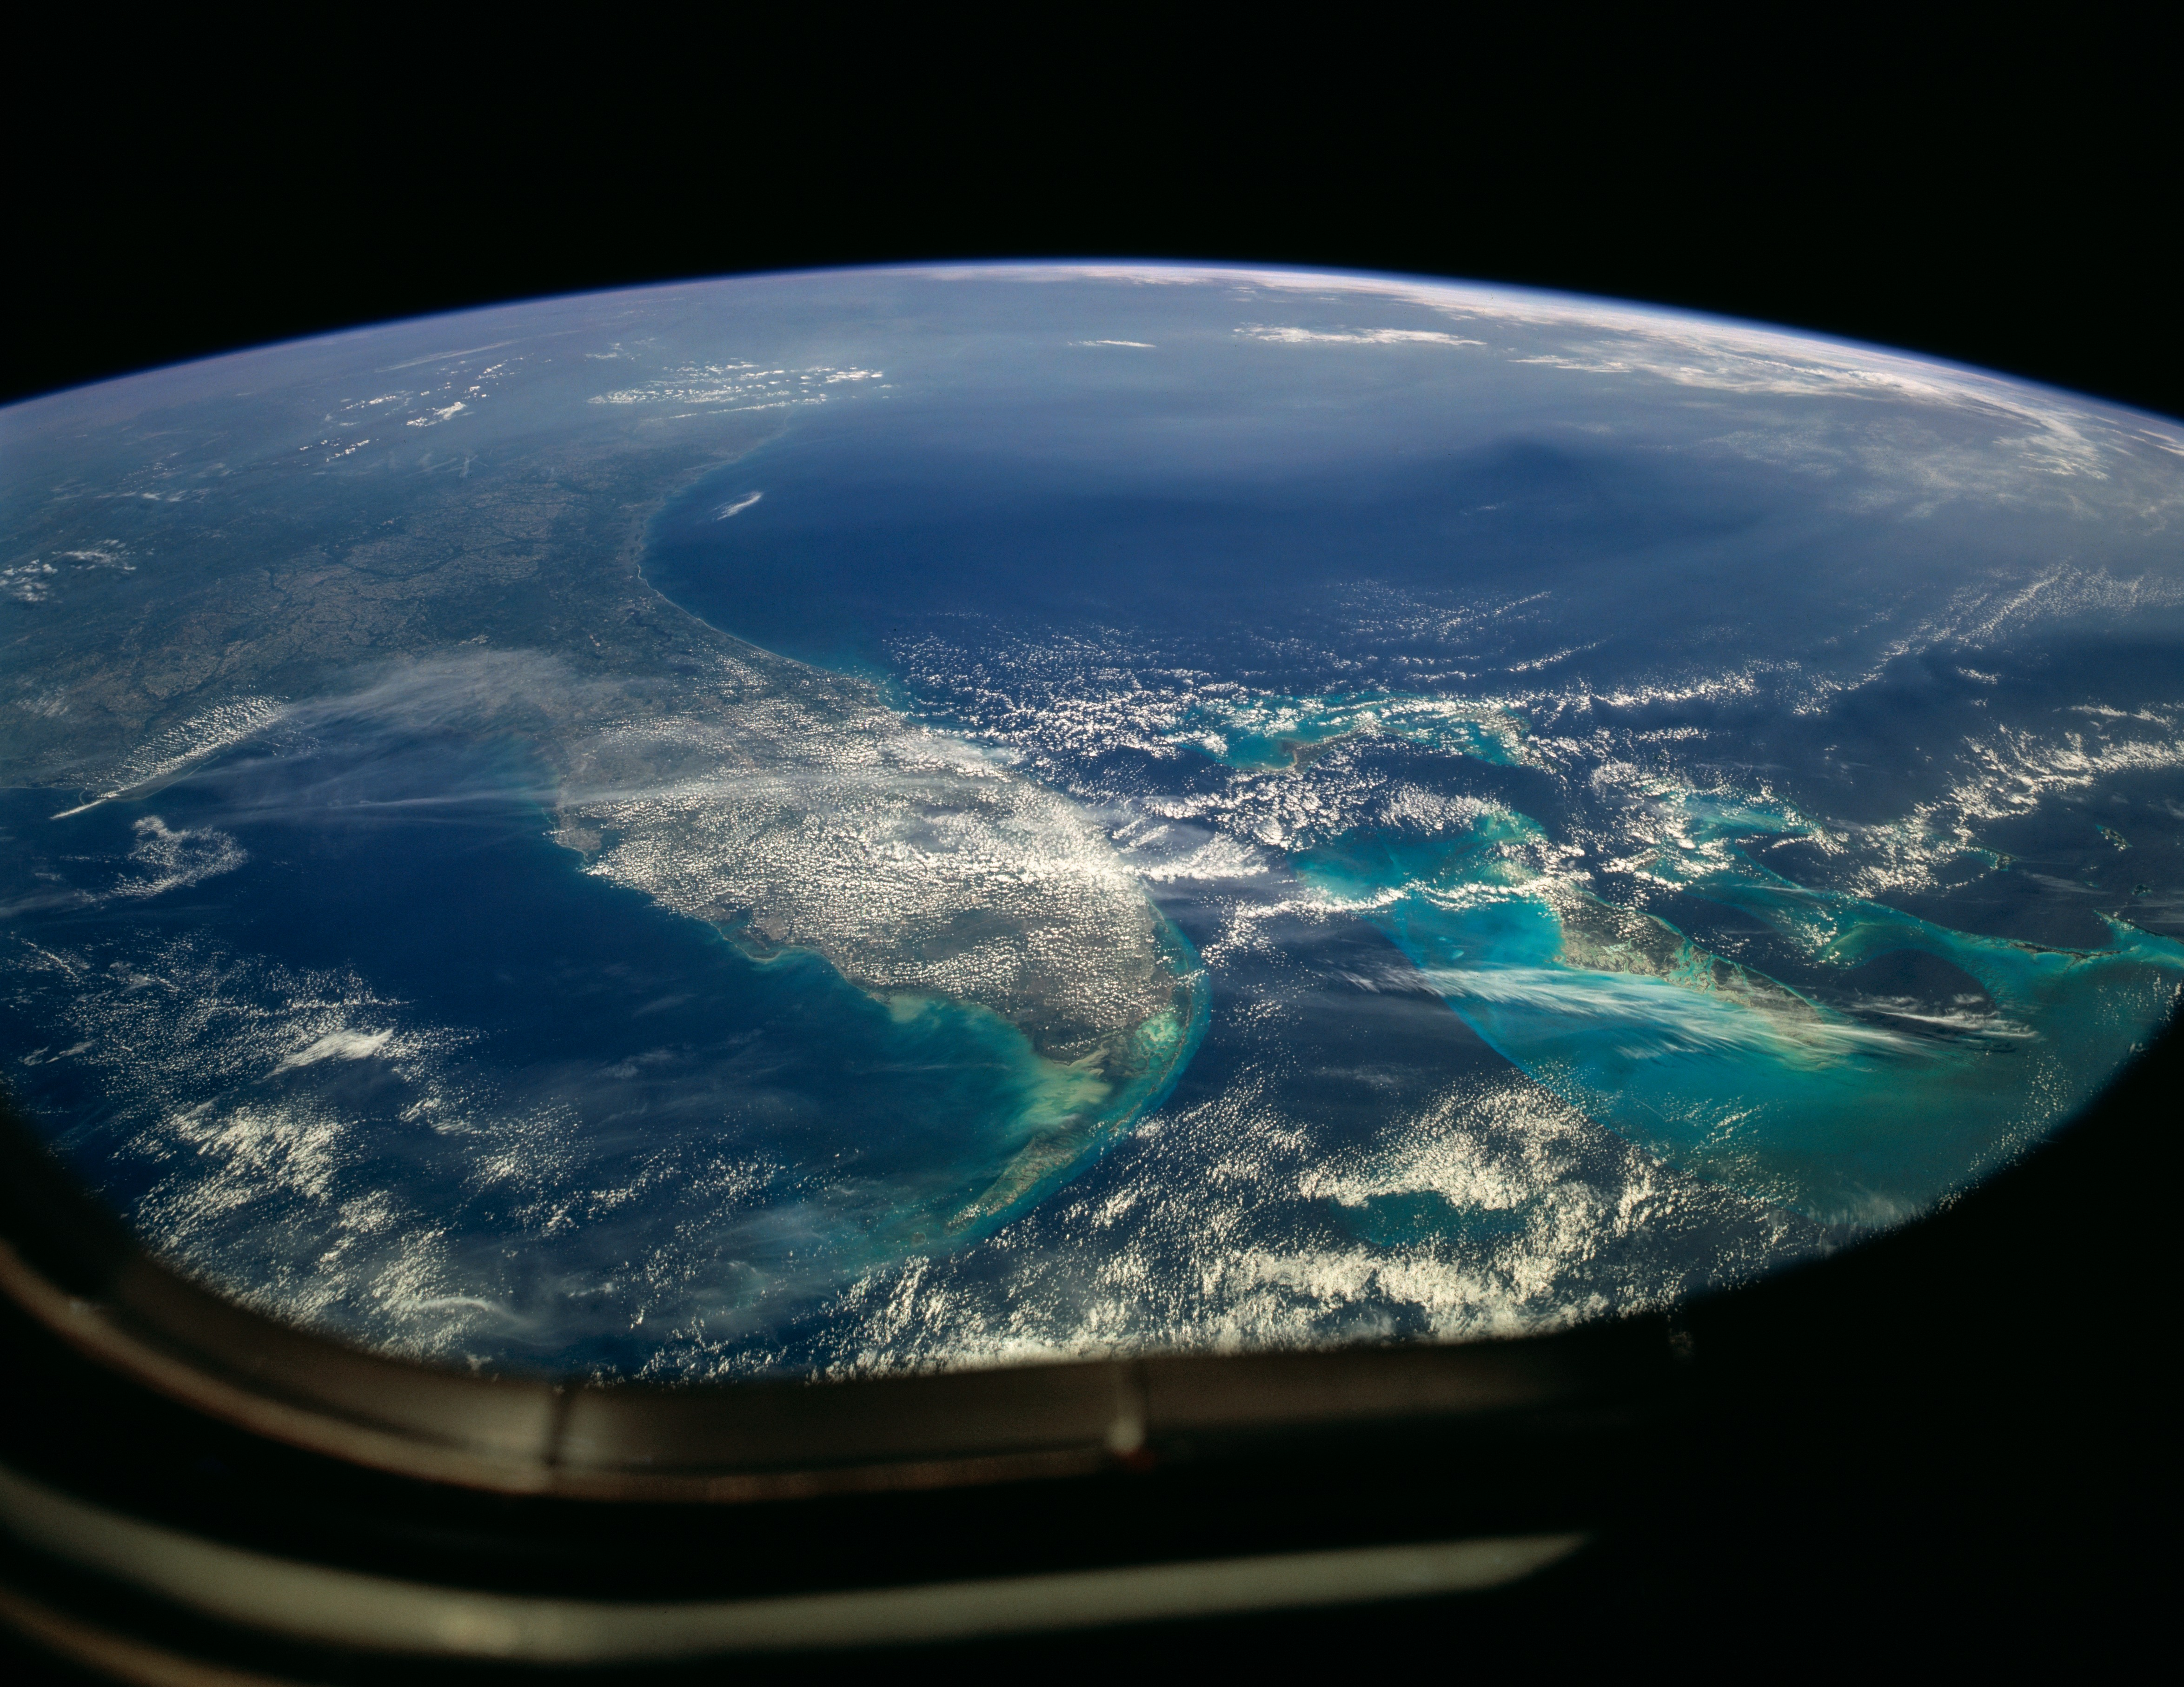 file:florida from sts-31 - wikimedia commons